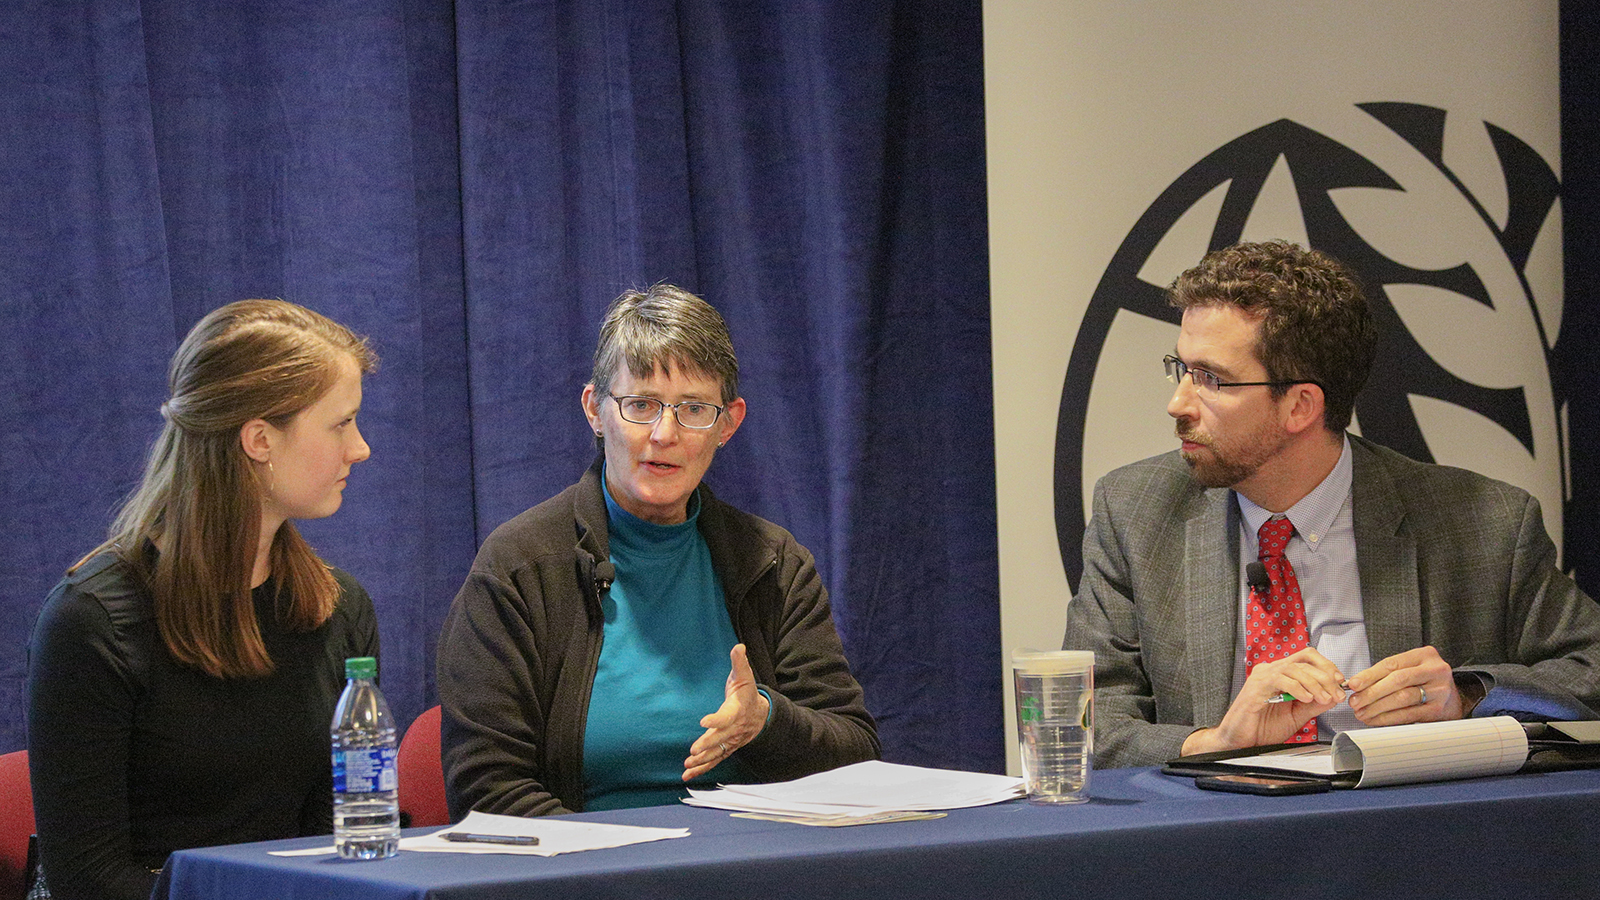 """Conscience Formation and Public Education"" panel featuring Erin Connolly, Margaret Pfeil, and Kevin Ahern."